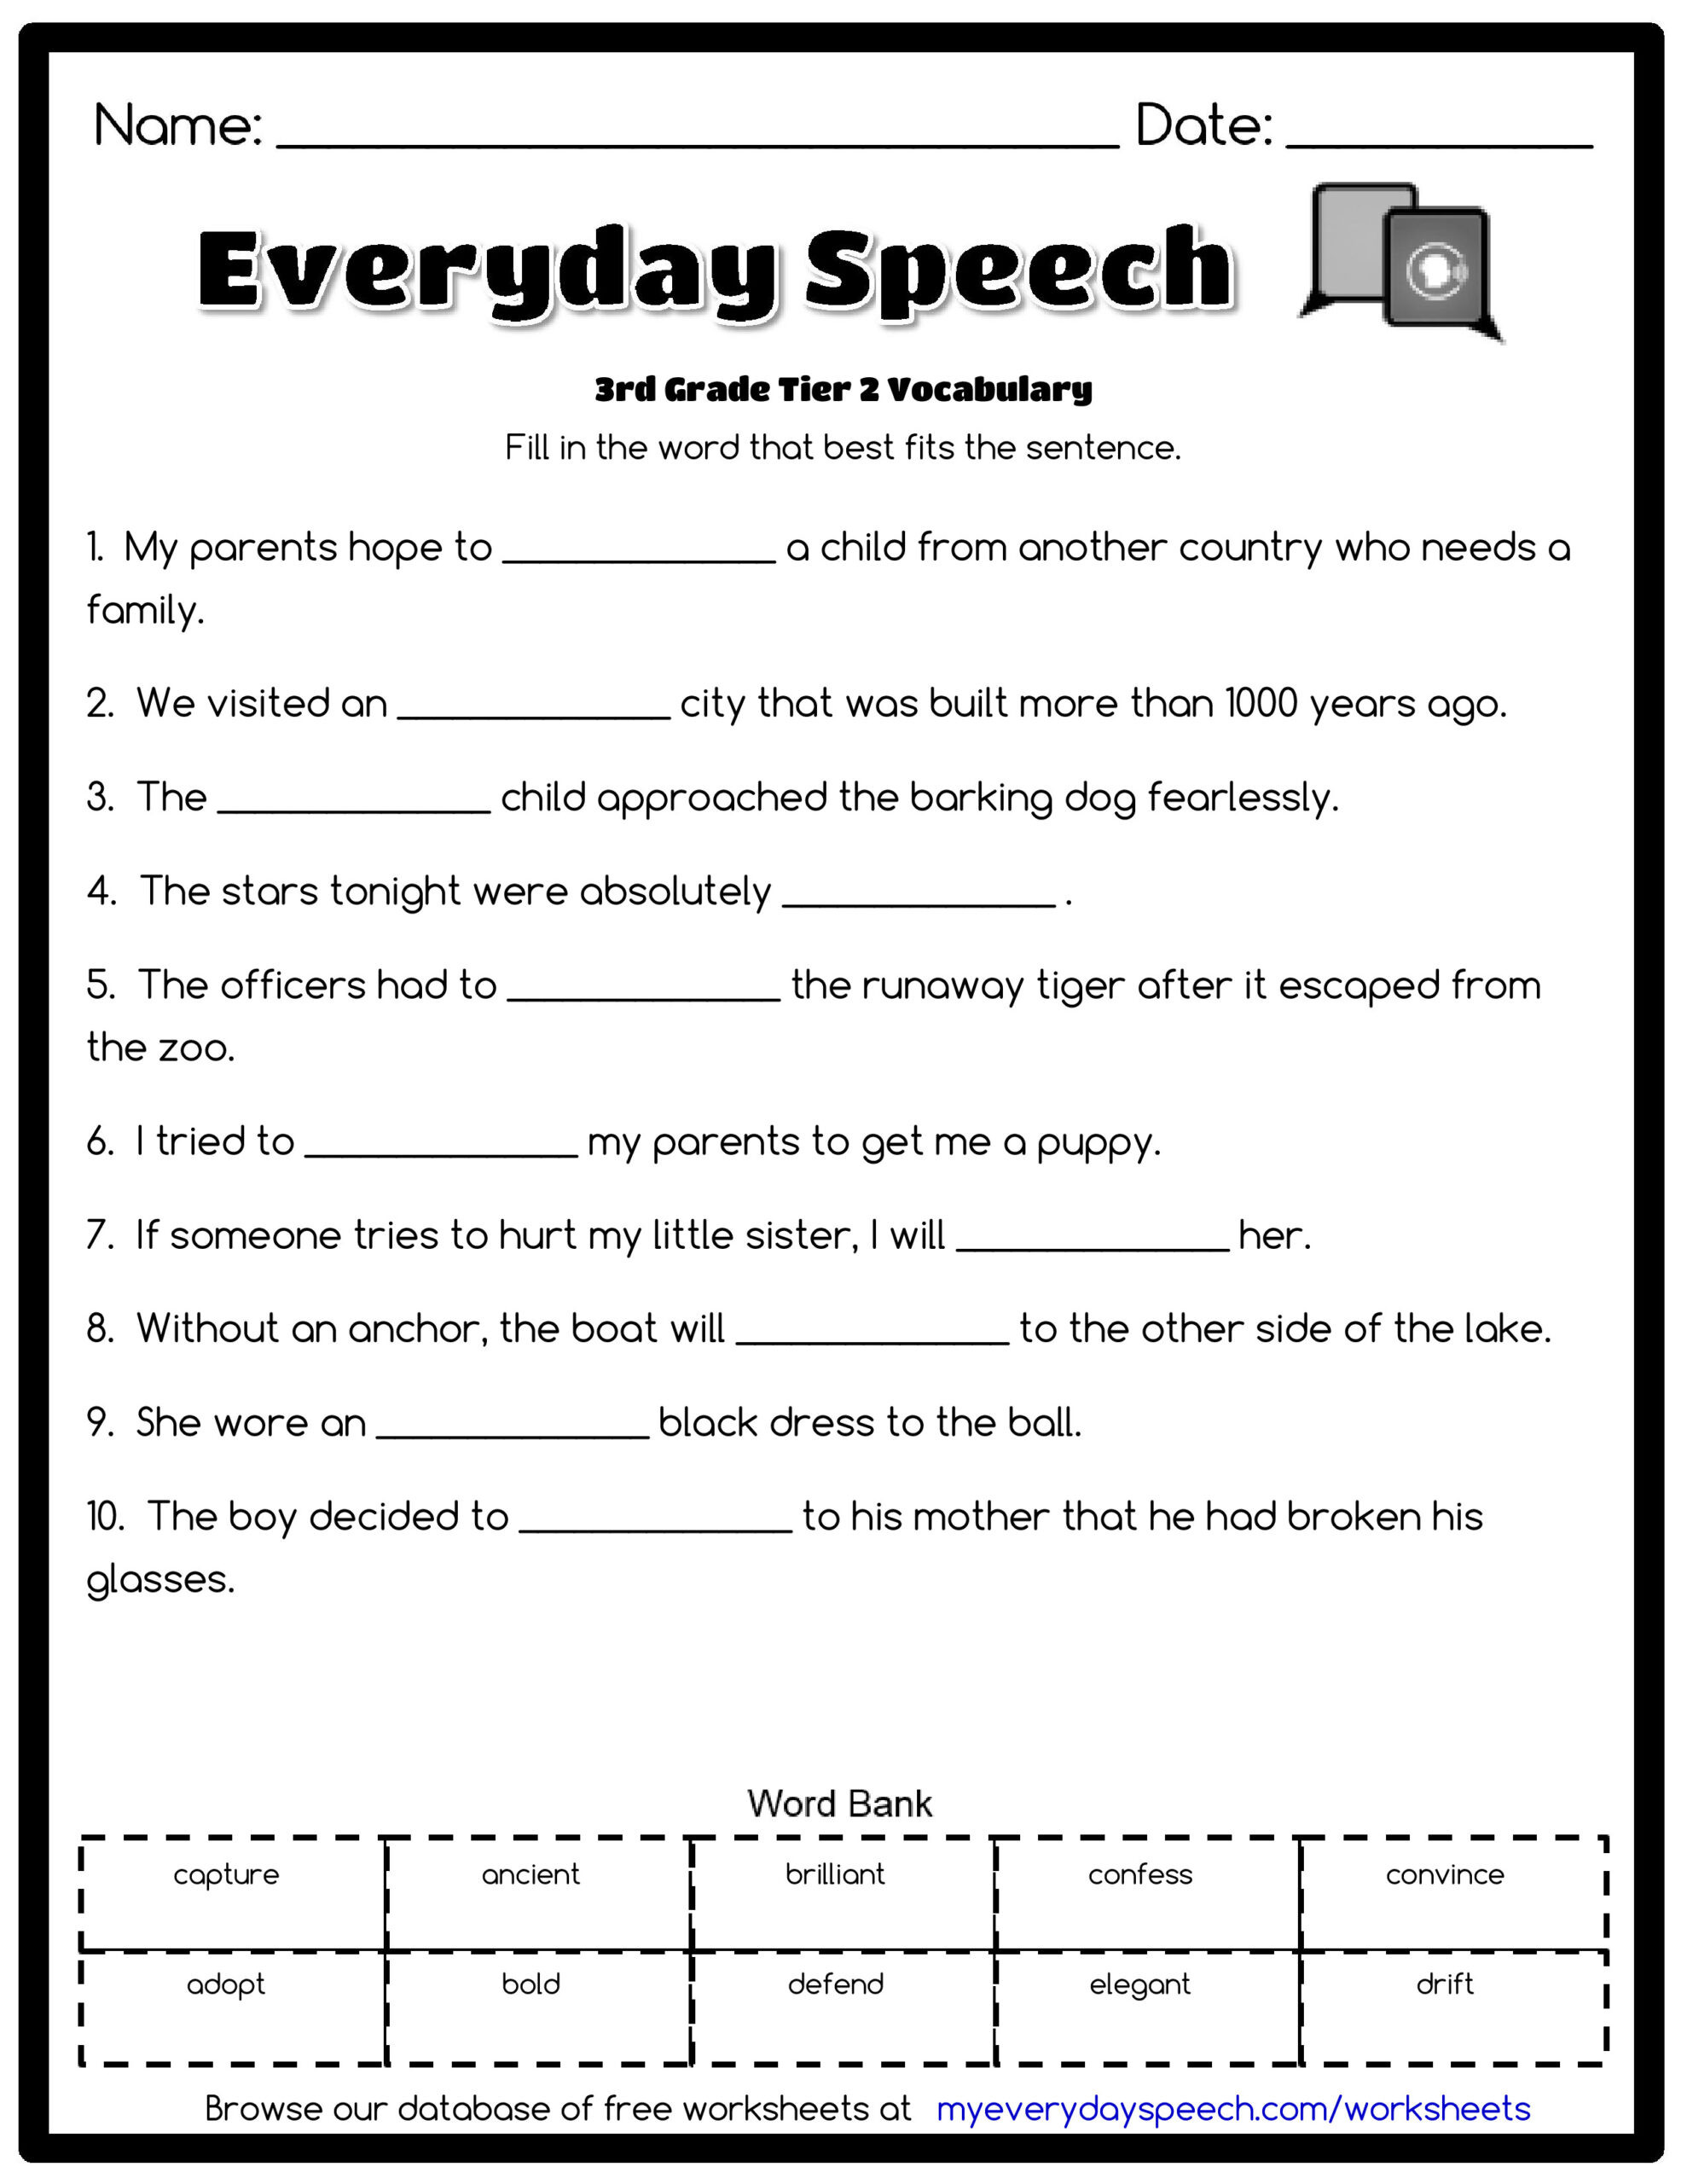 Complete Sentence Worksheets 4th Grade 3rd Grade Vocabulary Worksheets for Free Preschool Worksheet